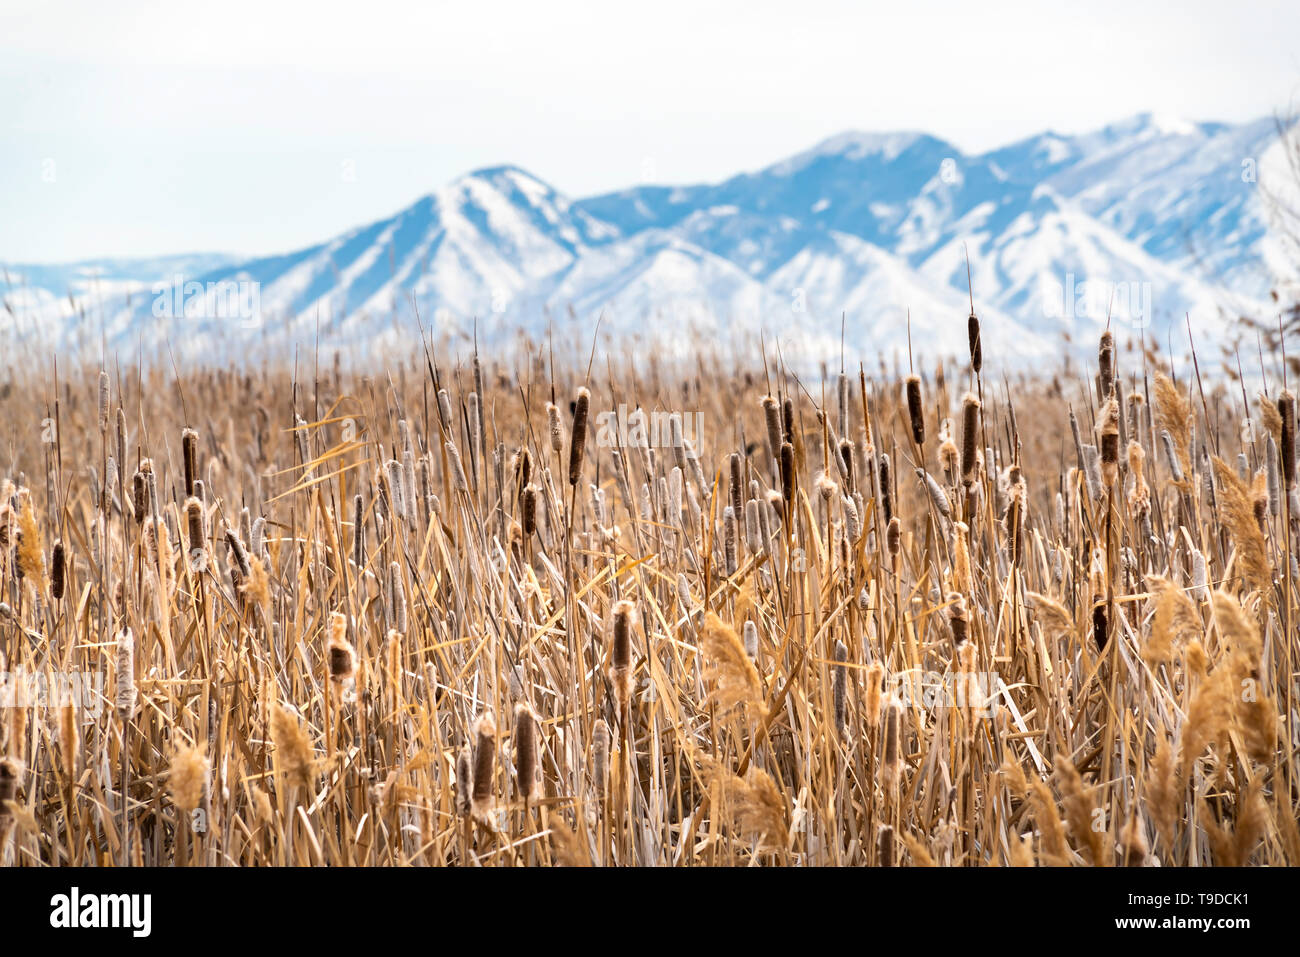 Tall brown grasses on a vast terrain viewed on a sunny winter day - Stock Image